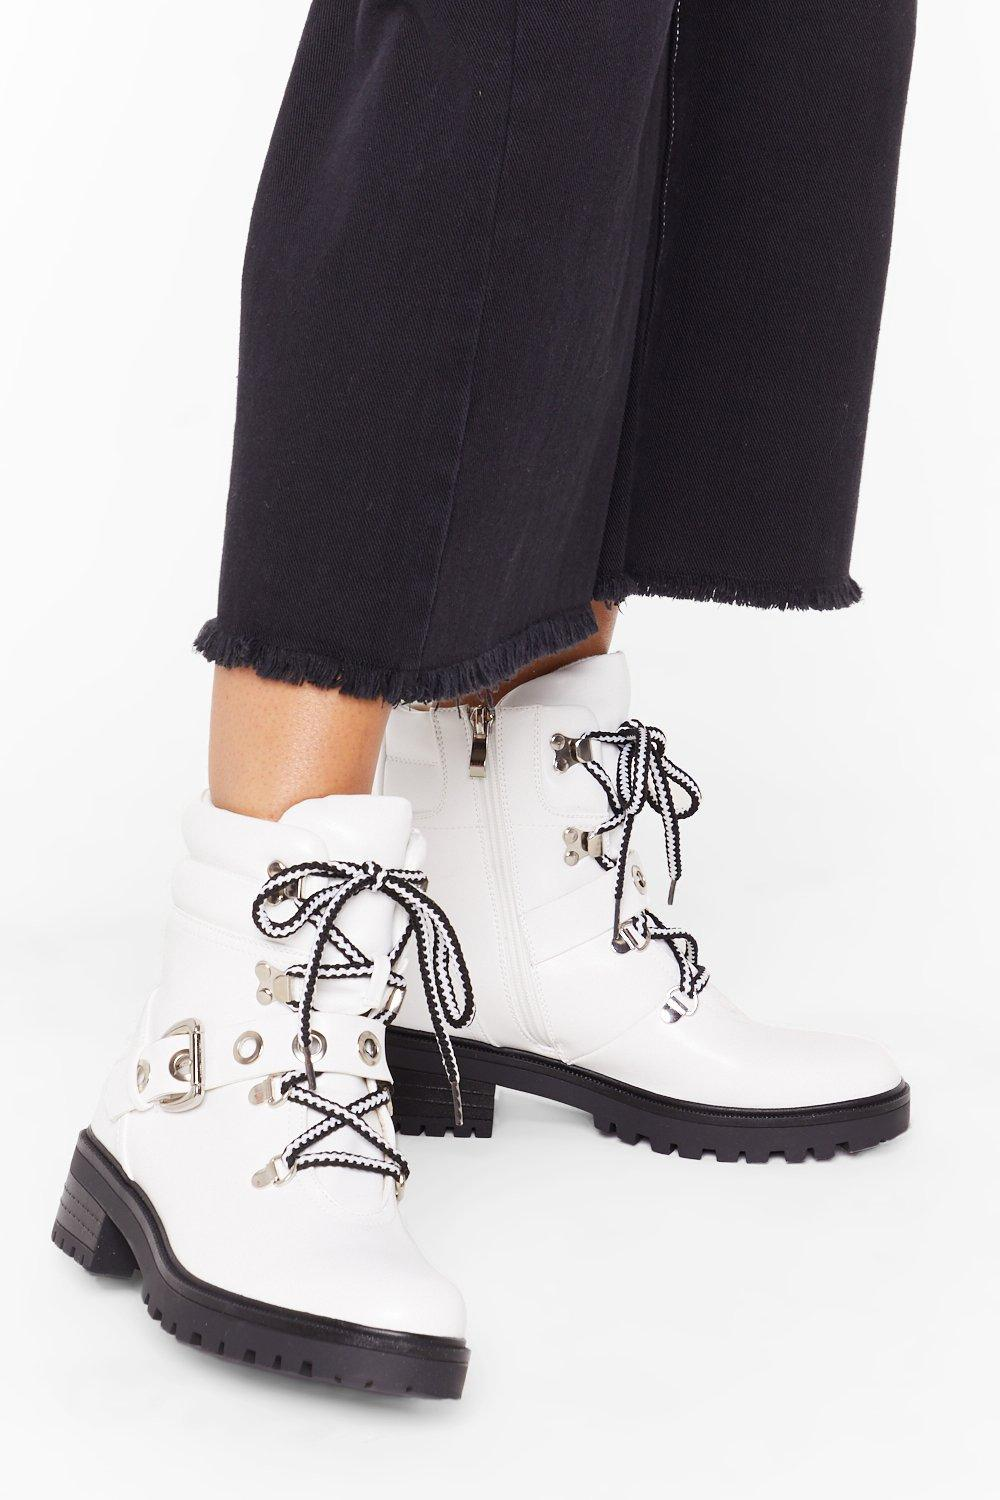 Image of Eyelet My Mind Wander Faux Leather Biker Boots